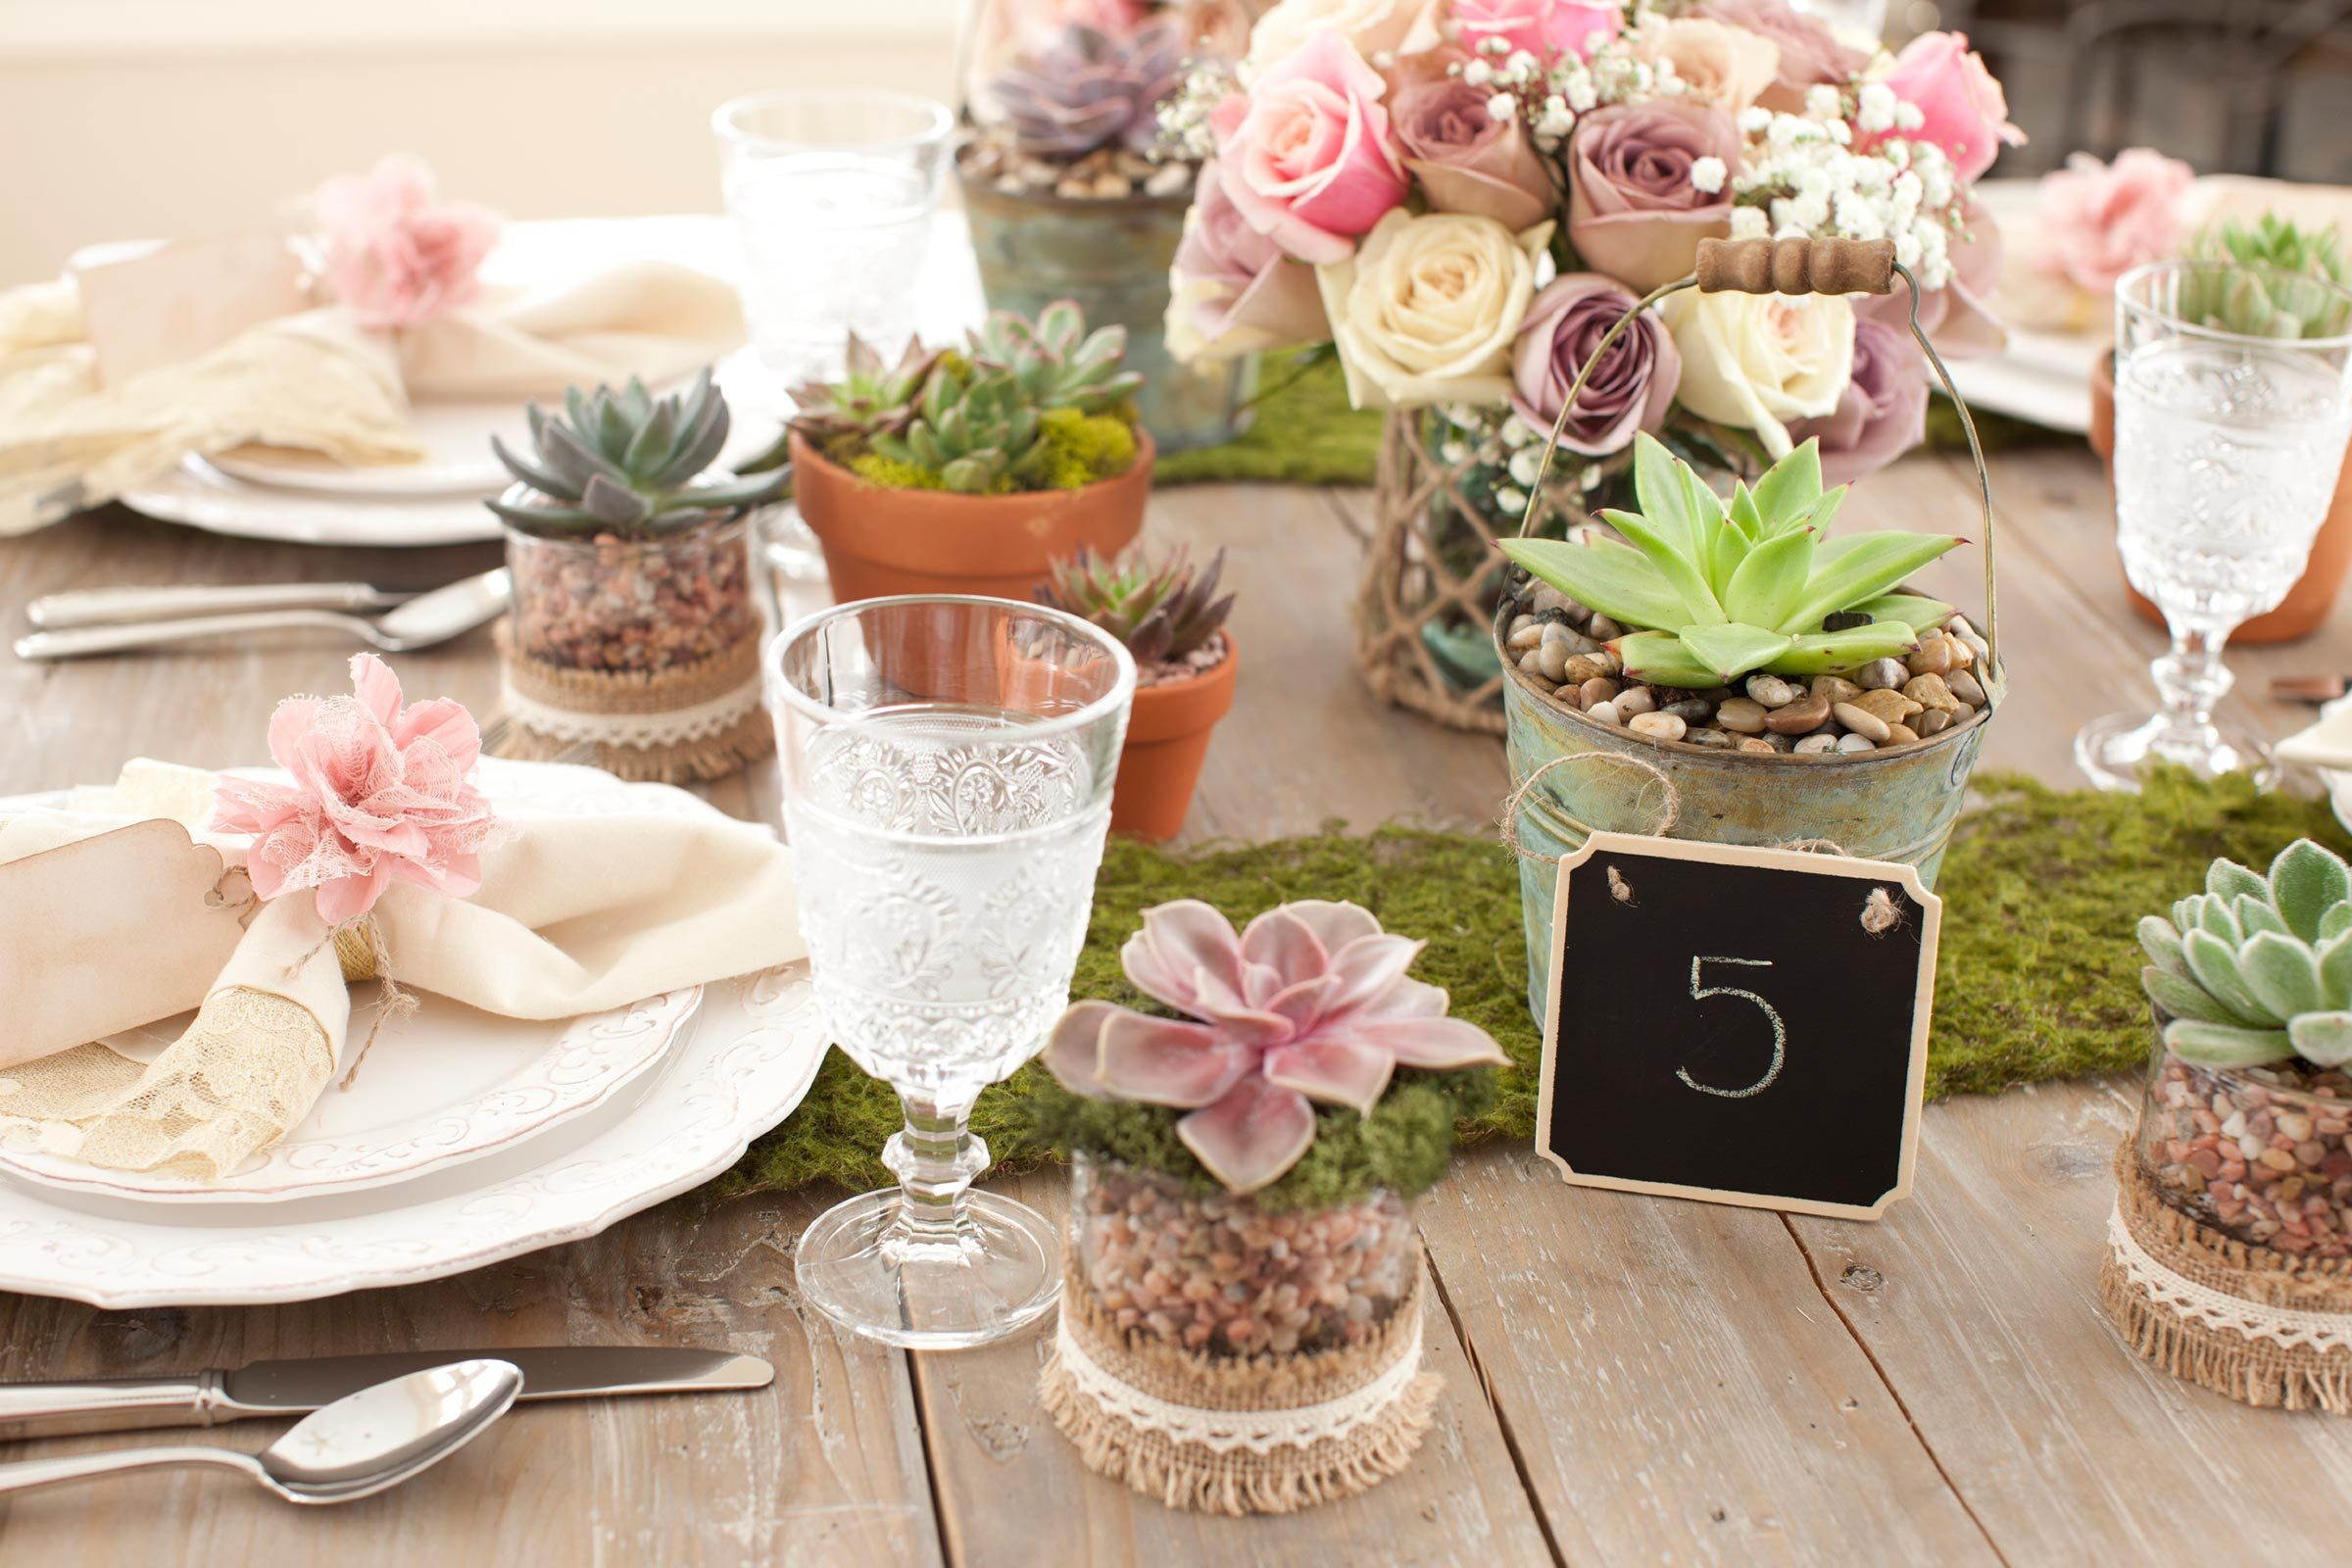 Secrets Wedding Planners Won't Tell You | Reader's Digest